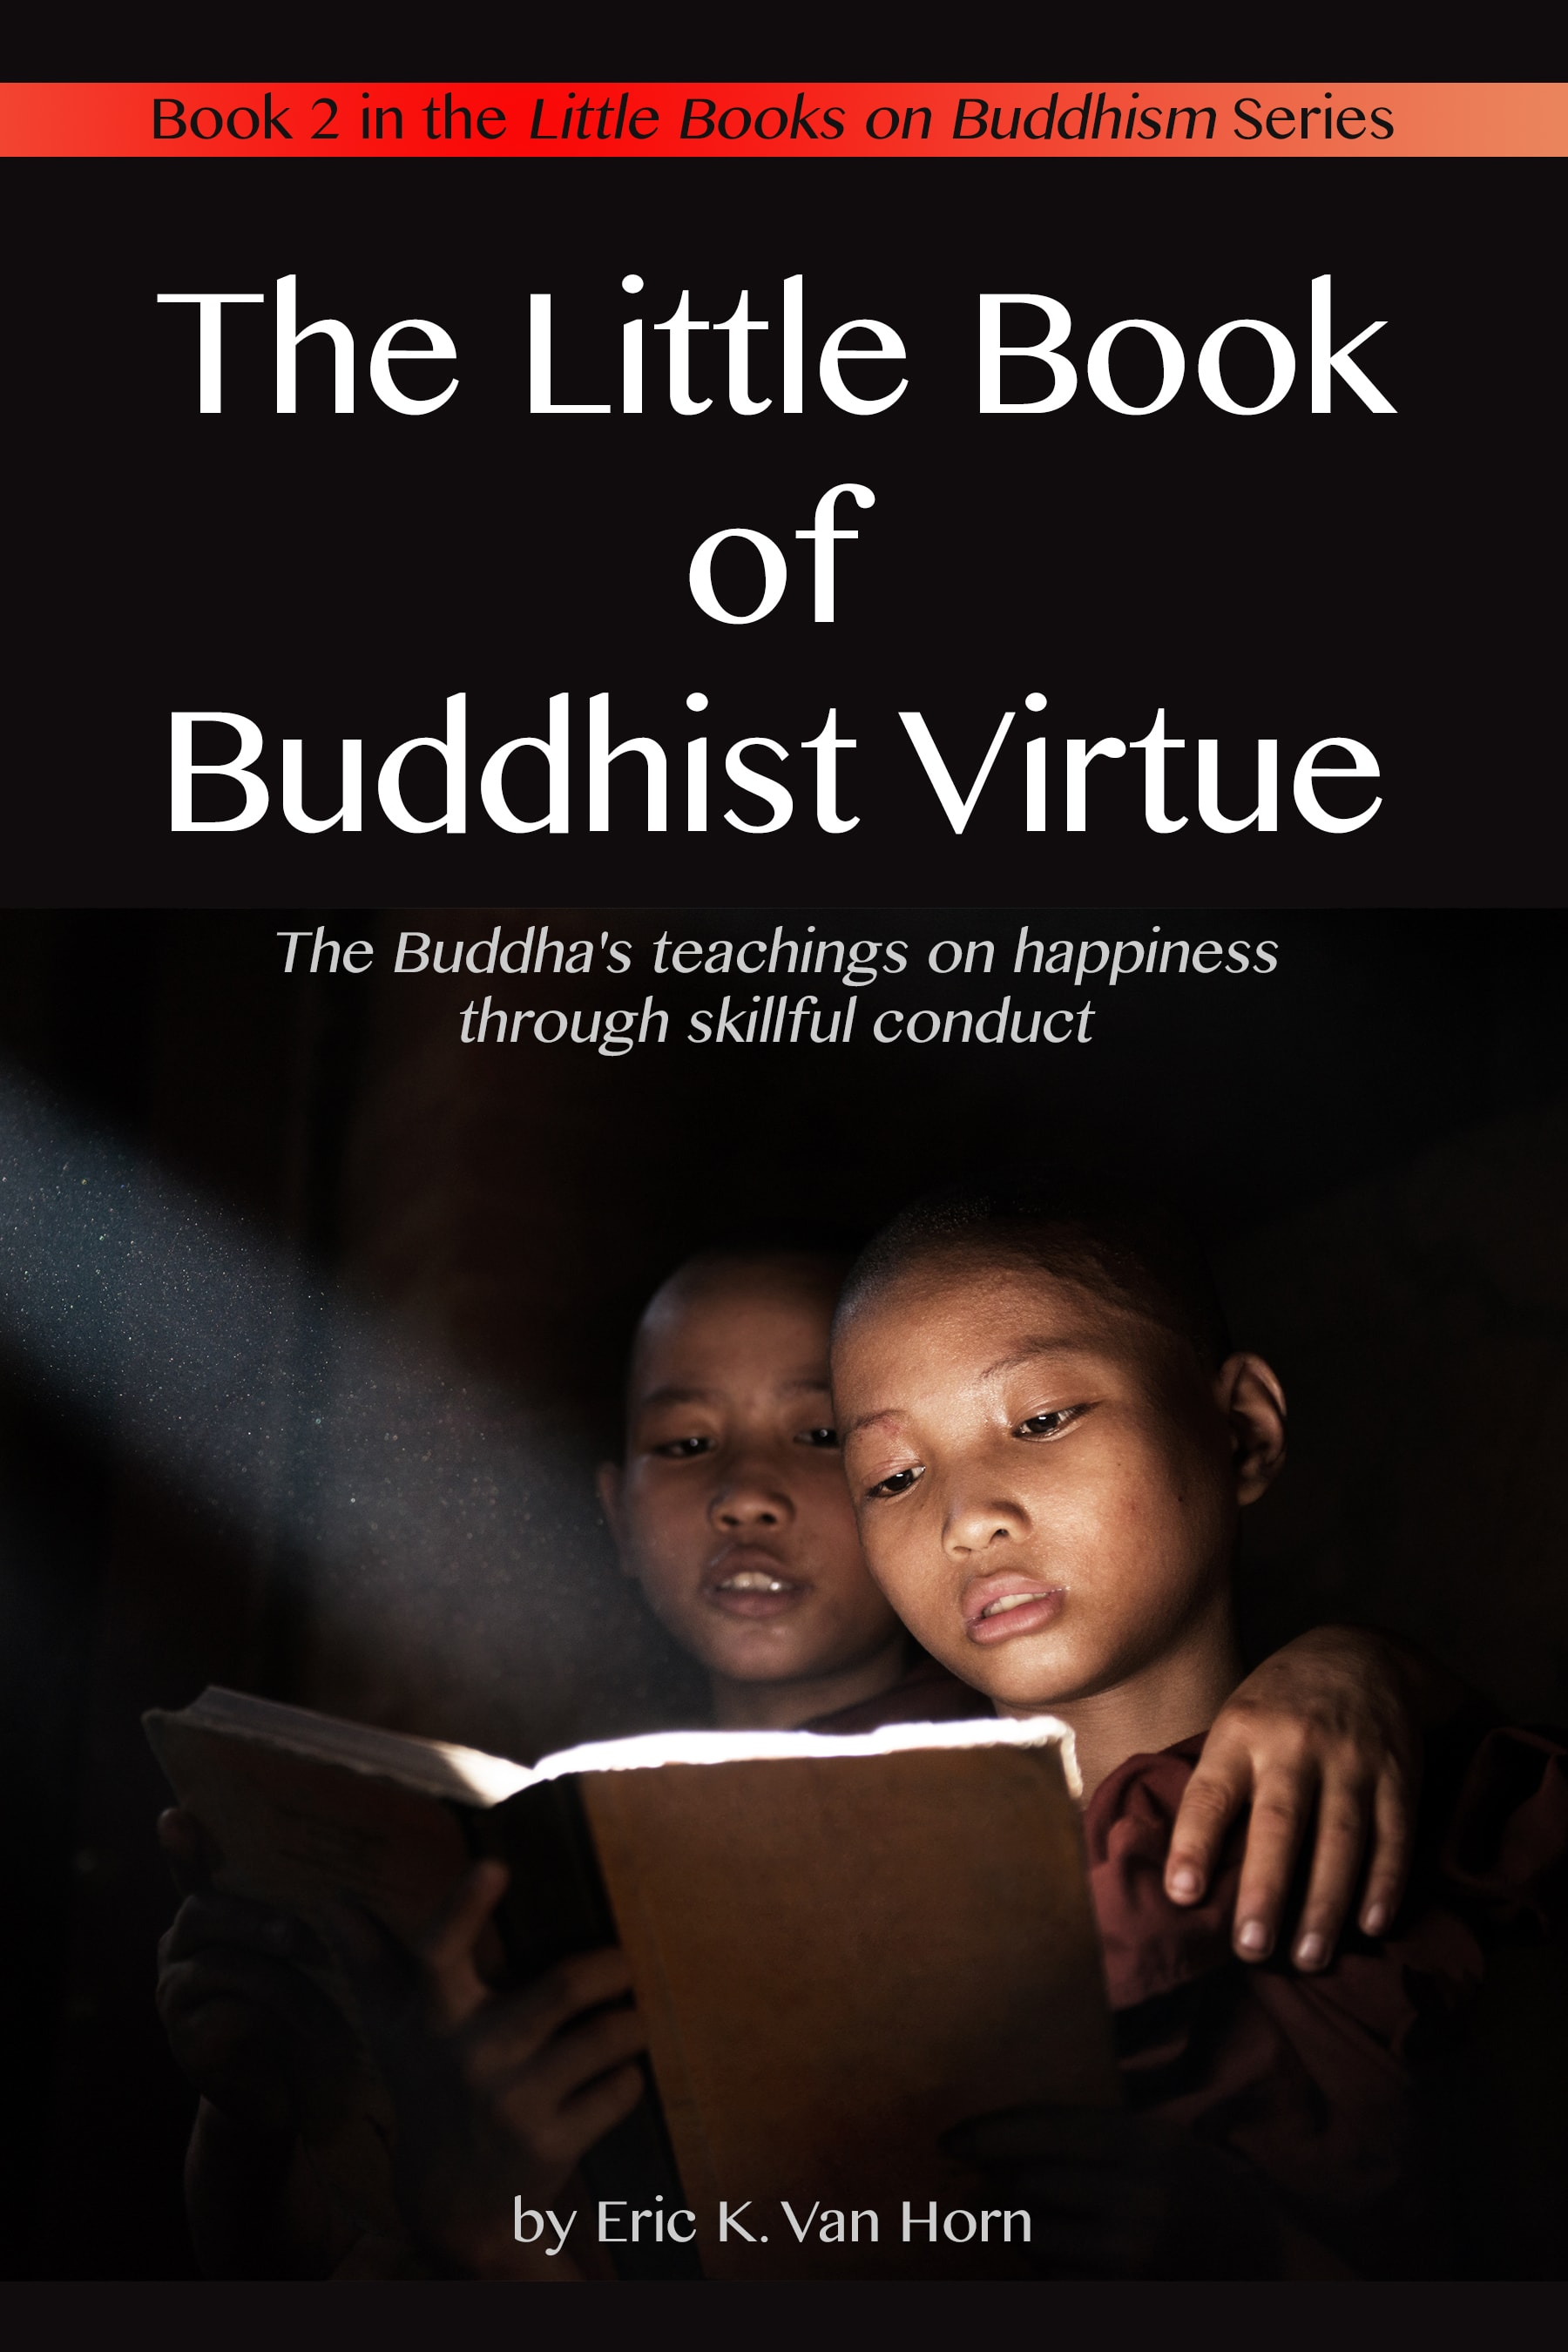 an analysis of buddhism teachings on practice and observance of moral precepts